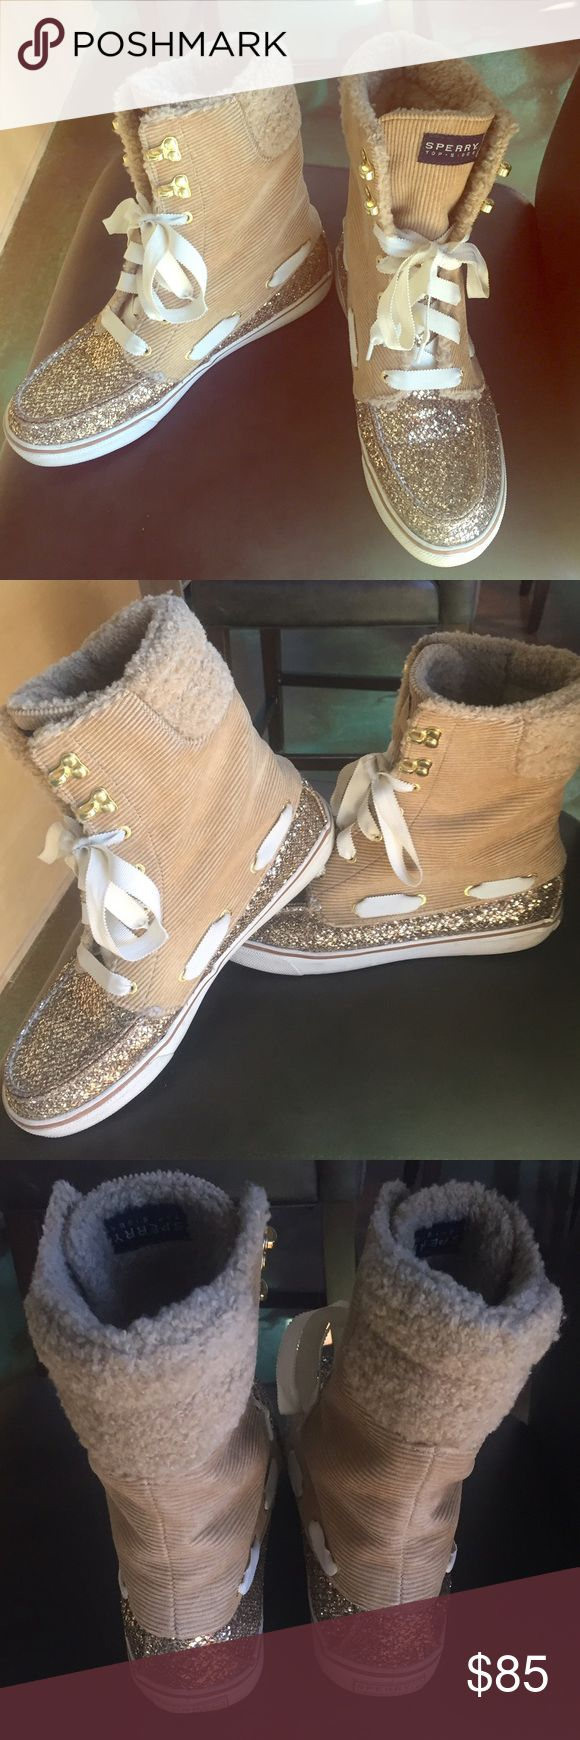 SALE Authentic Gold Sparkly Sperry Top Siders This is a pair of gorgeous, authentic, gold sparkly, Sperry Top Siders in a size 9. These shoes are super cool, very comfortable, and in excellent condition. They would make a great gift for some special lady in your life. Don't miss out! $50 on 🅿️🅿️ Sperry Top-Sider Shoes Athletic Shoes